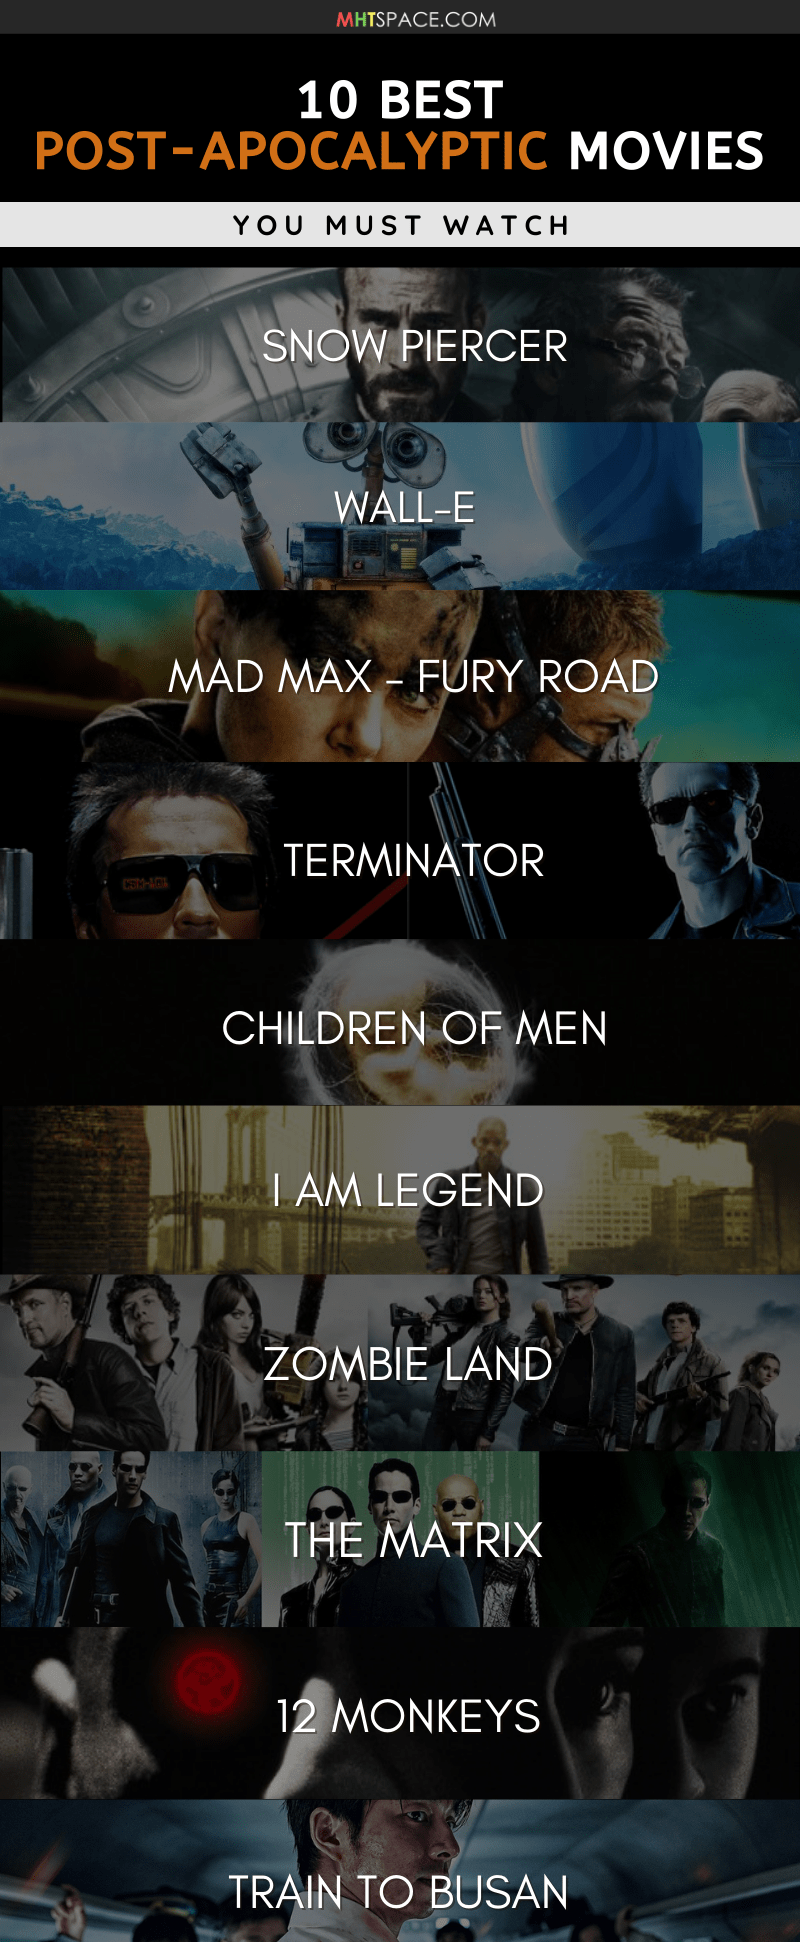 10 Best Post Apocalyptic Movies pin